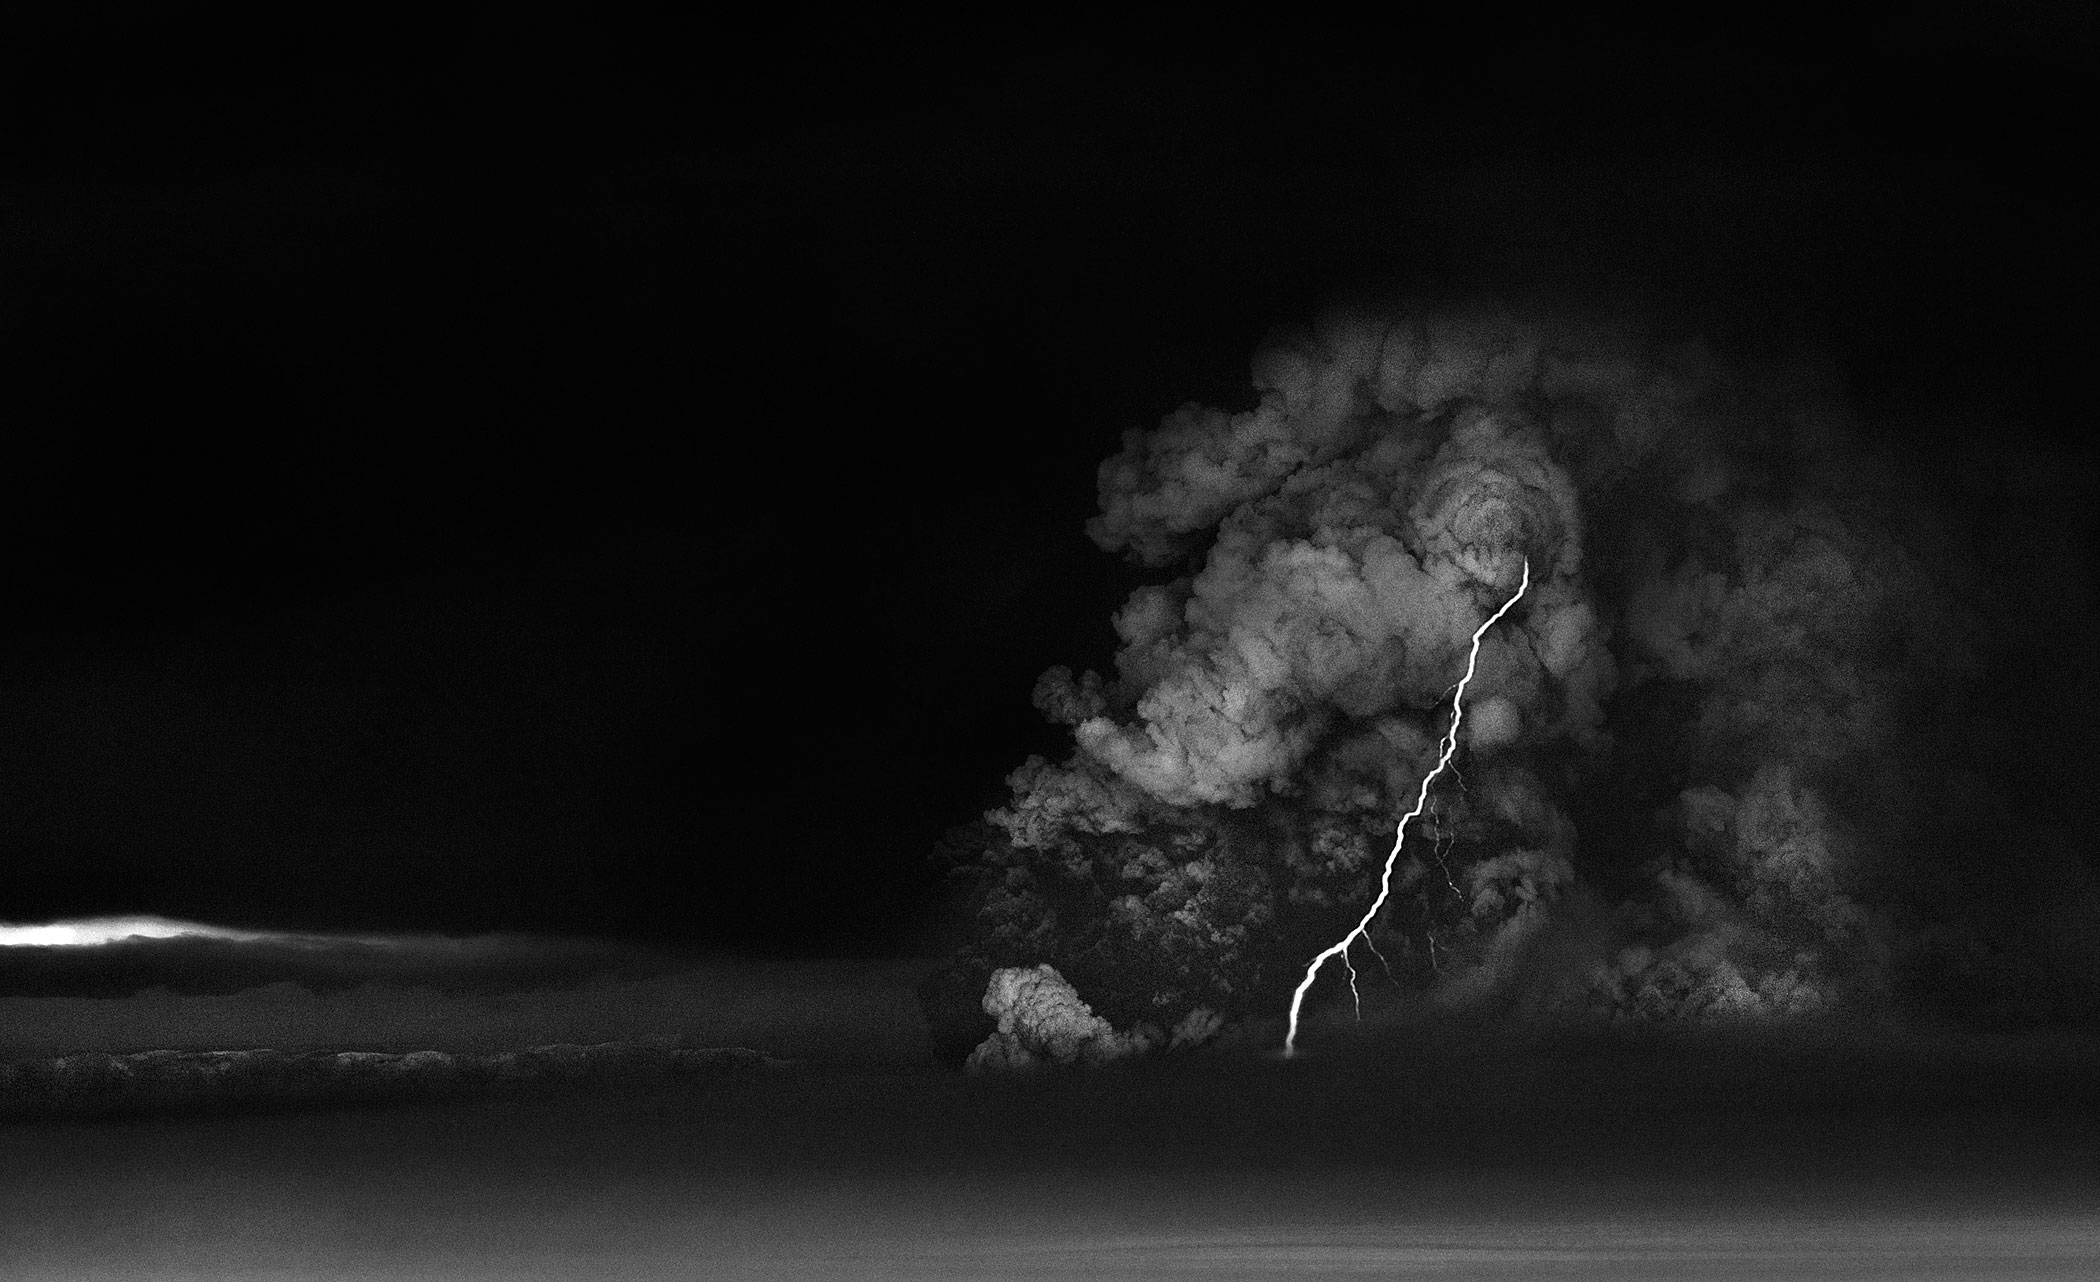 A lightning bolt strikes through an ash cloud erupting from the Grimsvotn volcano in Iceland, May 21, 2011.